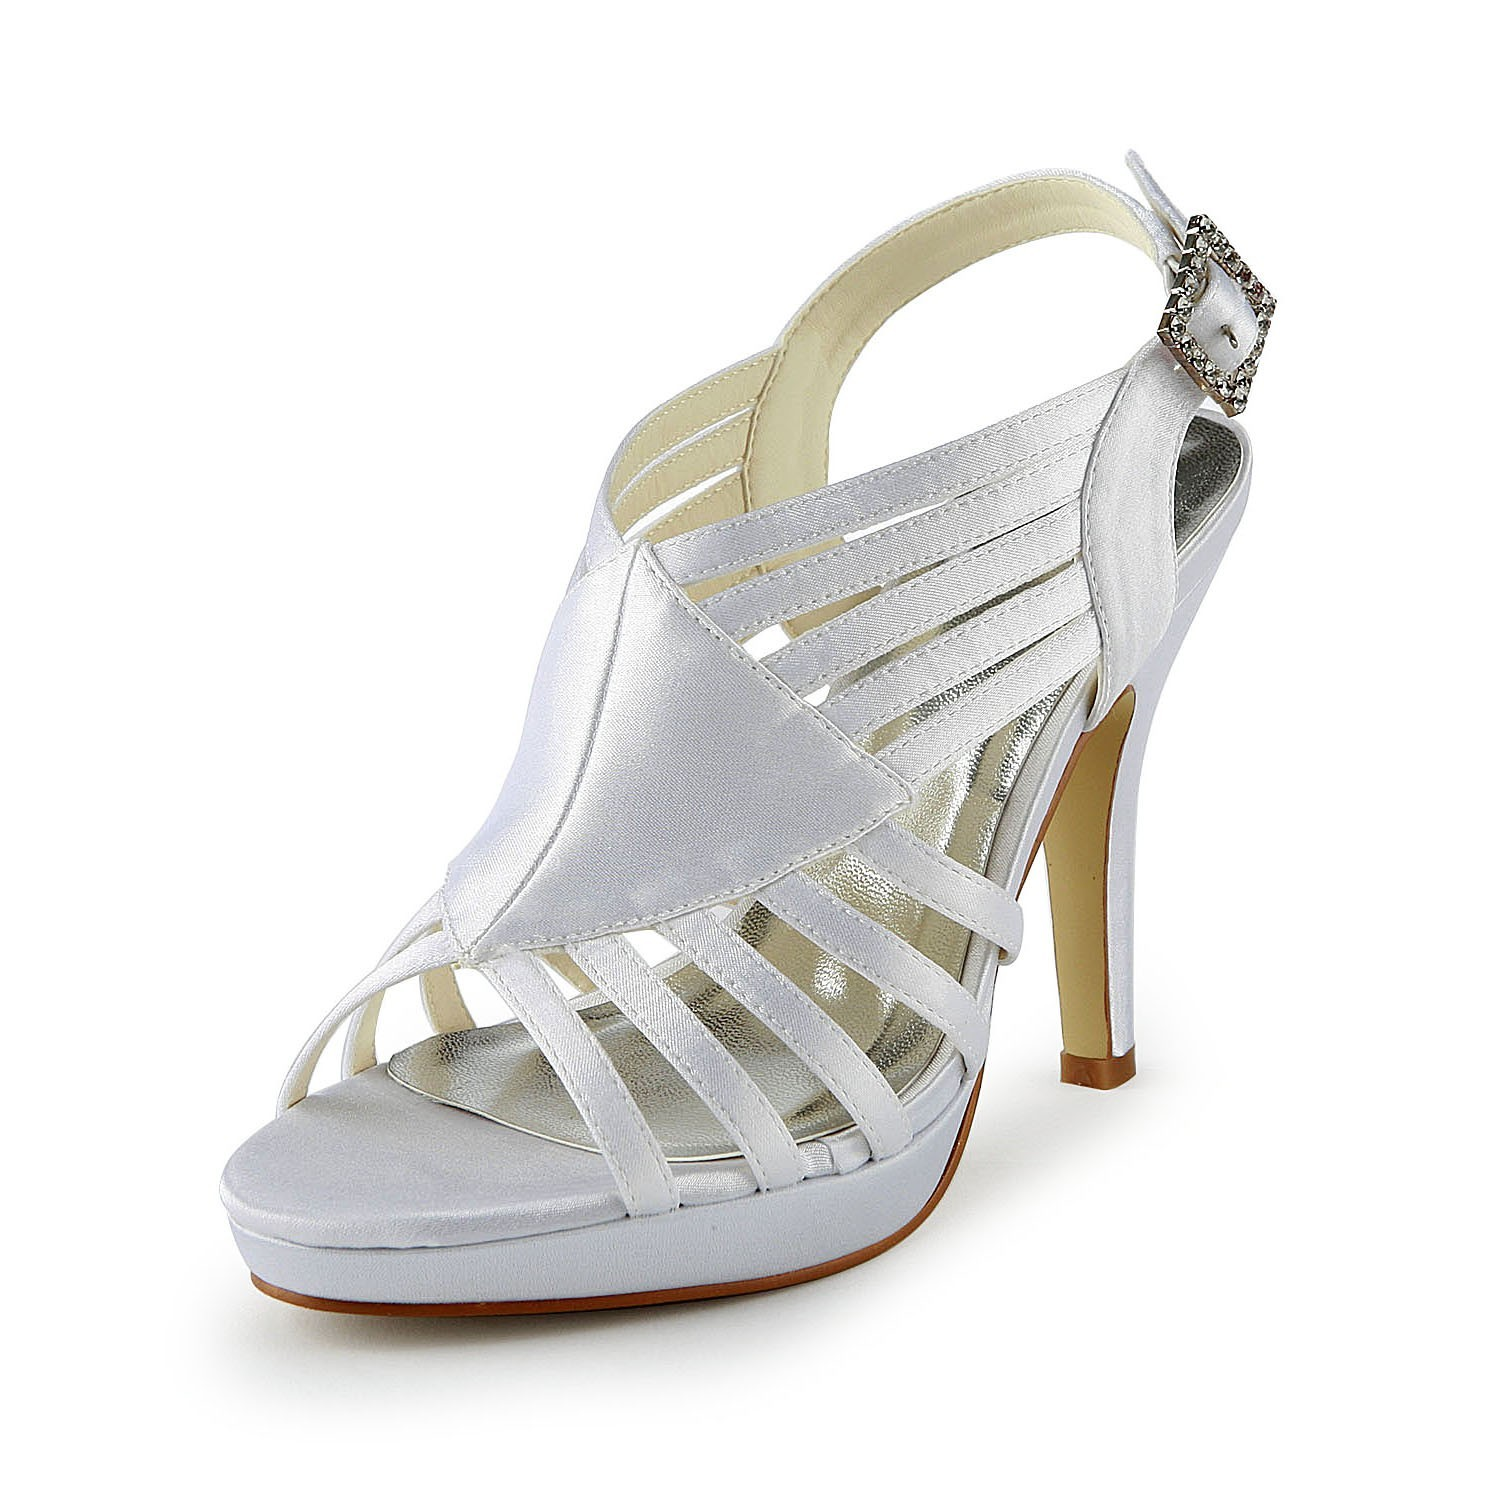 0b34b07112b3 The Most Fashionable Women s Gorgeous Satin Stiletto Heel Sandals With Buckle  White Wedding Shoes